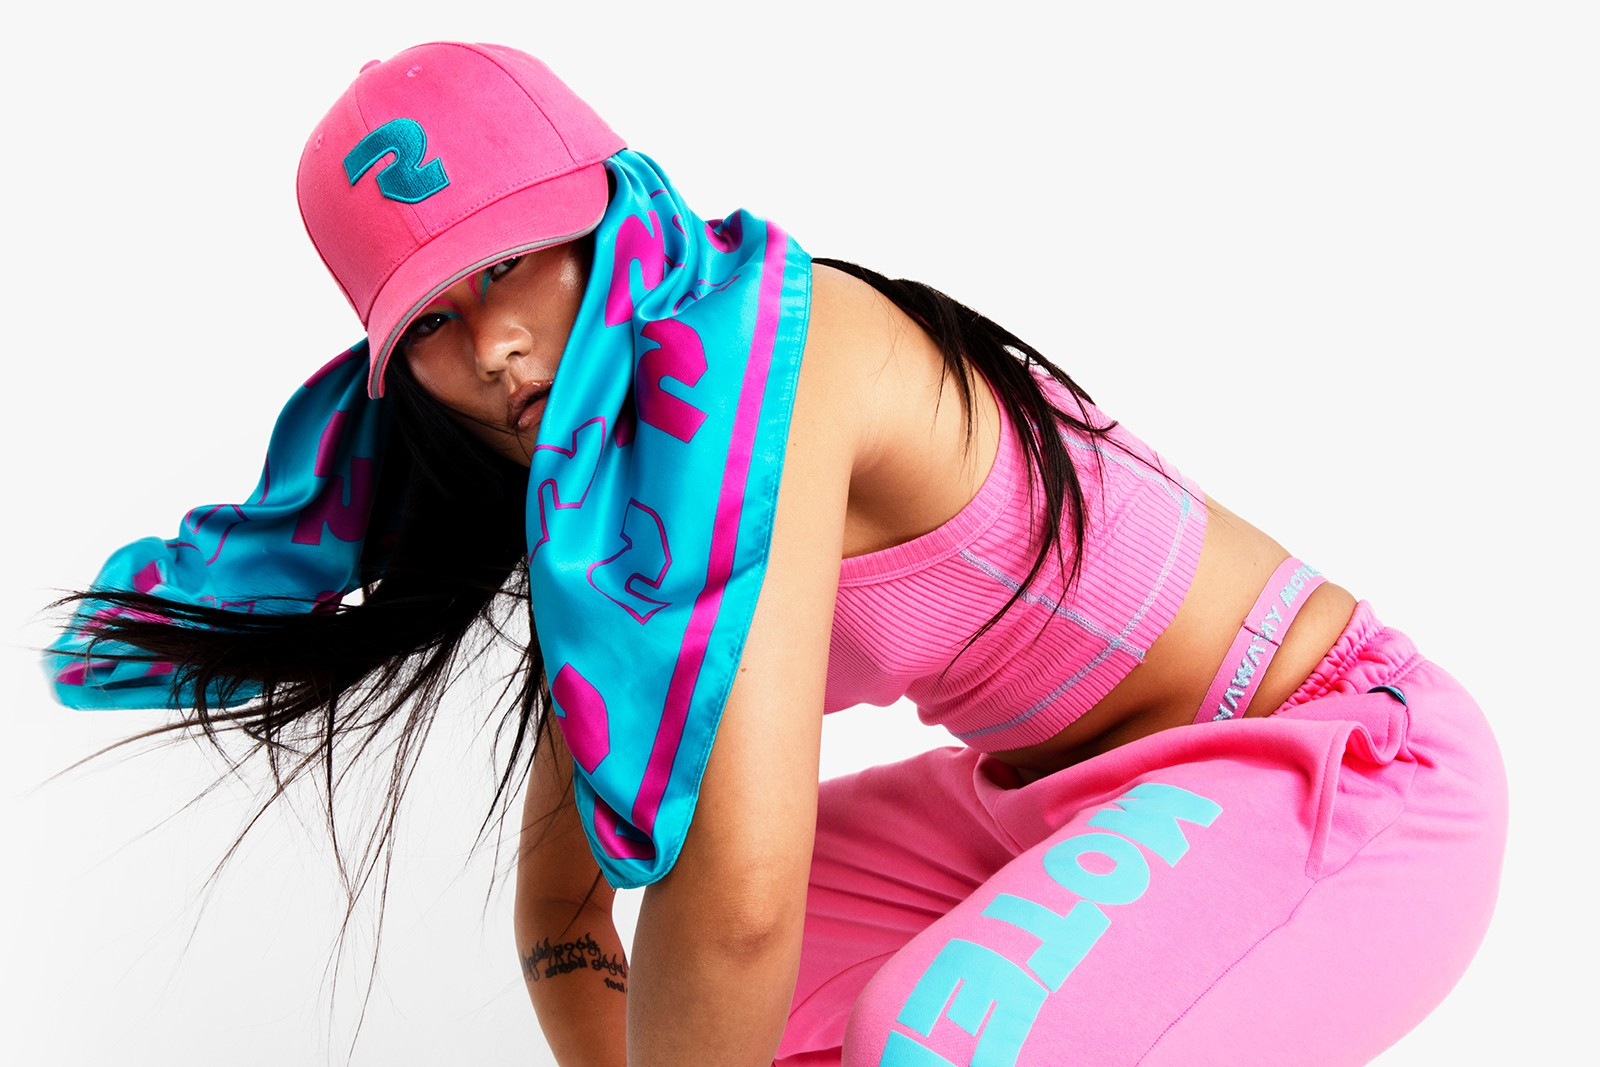 Parris Goebel Runaway Motel Clothing Brand Activewear Campaign Choreographer Dancer Auckland New Zealand